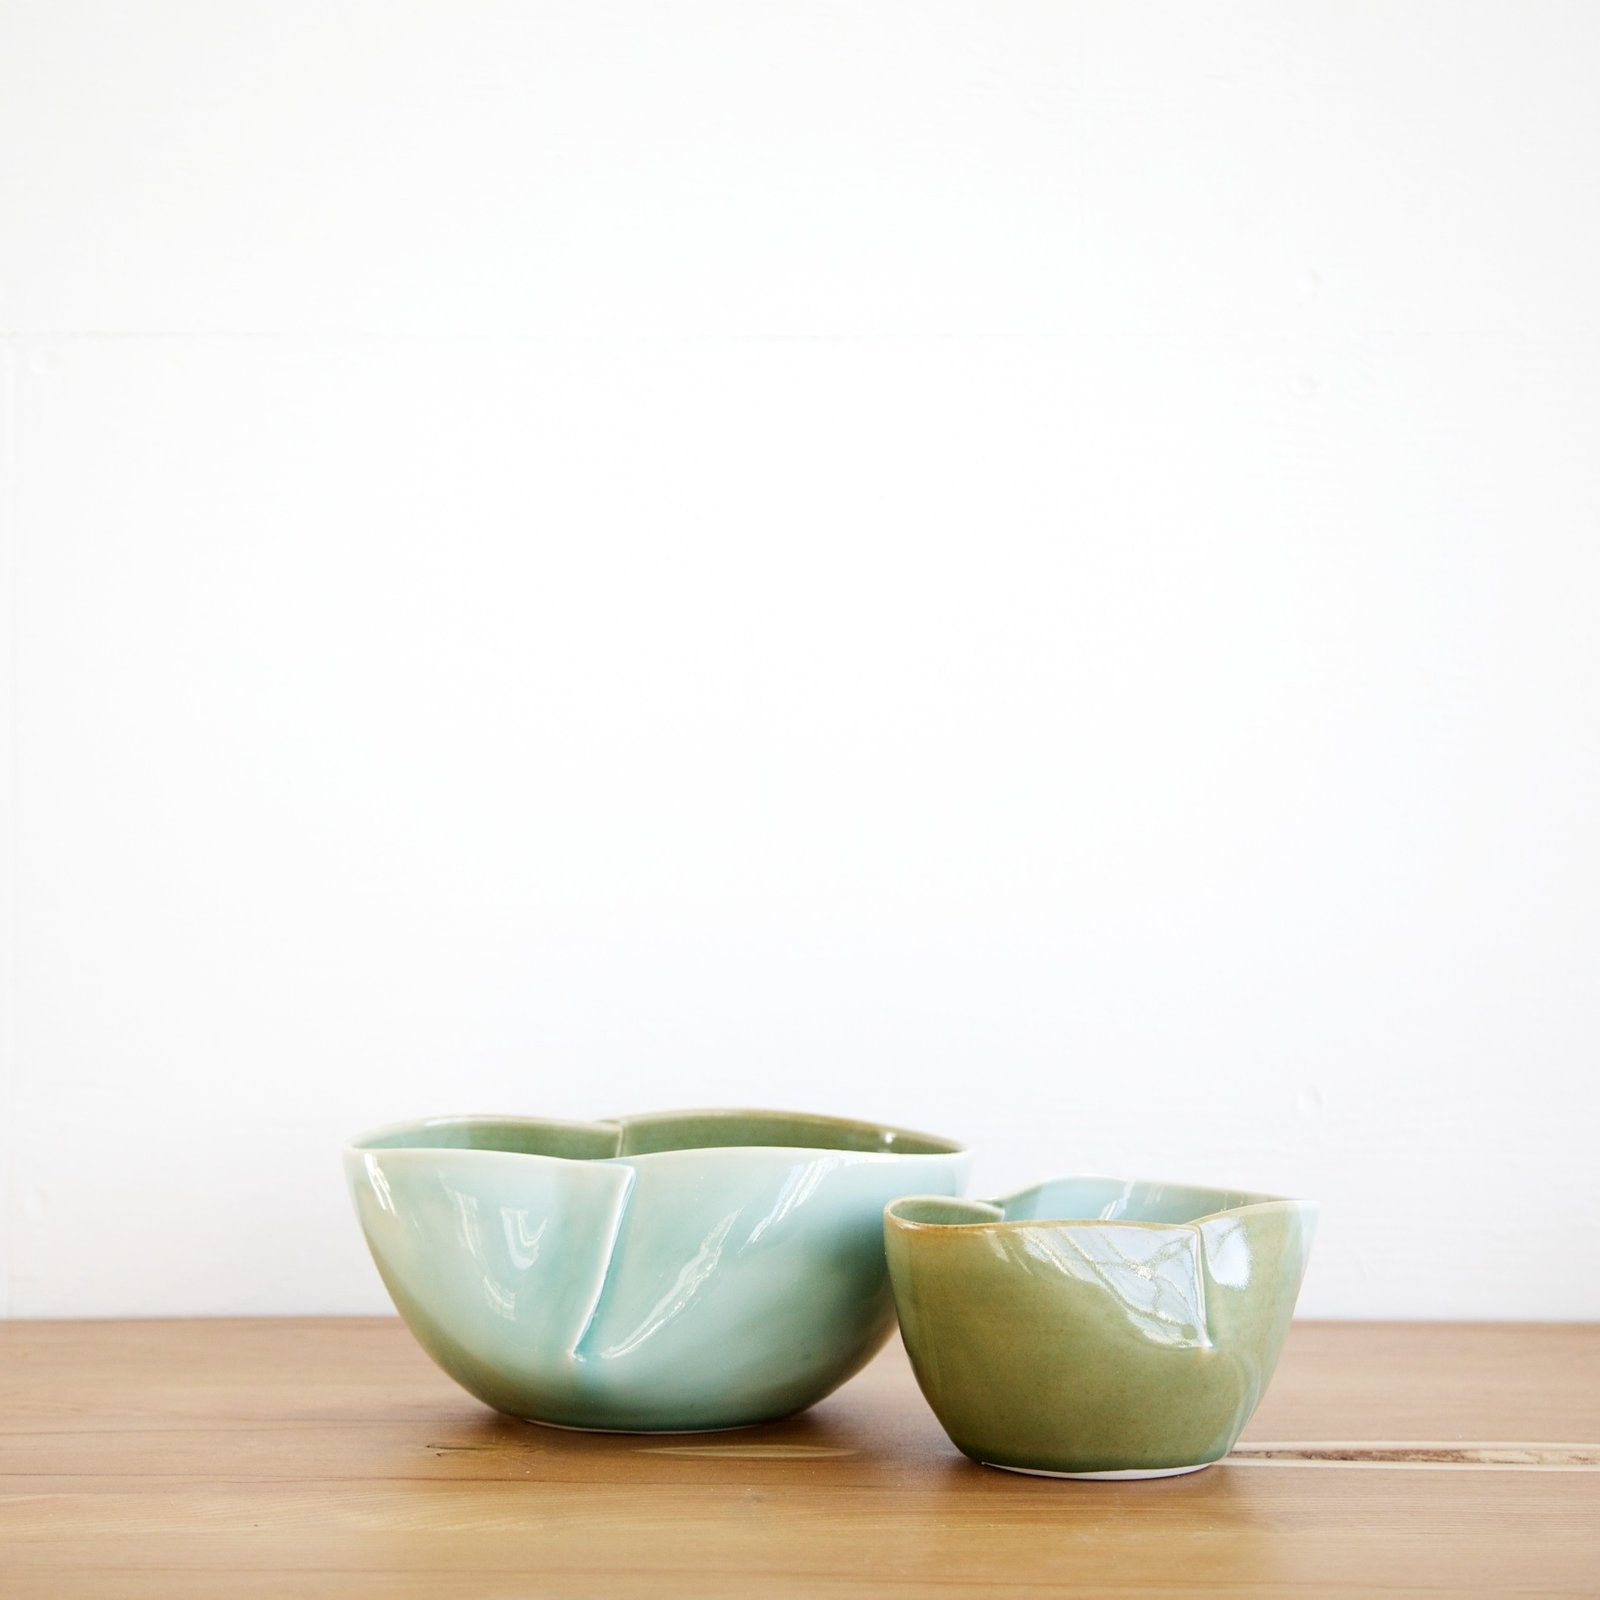 Dart bowls by Studio Joo  WorkOf's collection spans scales, including small objects like handmade bowls and light fixtures by Brooklyn artist Elaine Tian of Studio Joo. Photo by Emily Johnston.  Photo 6 of 6 in WorkOf: Building a Community of Brooklyn Makers